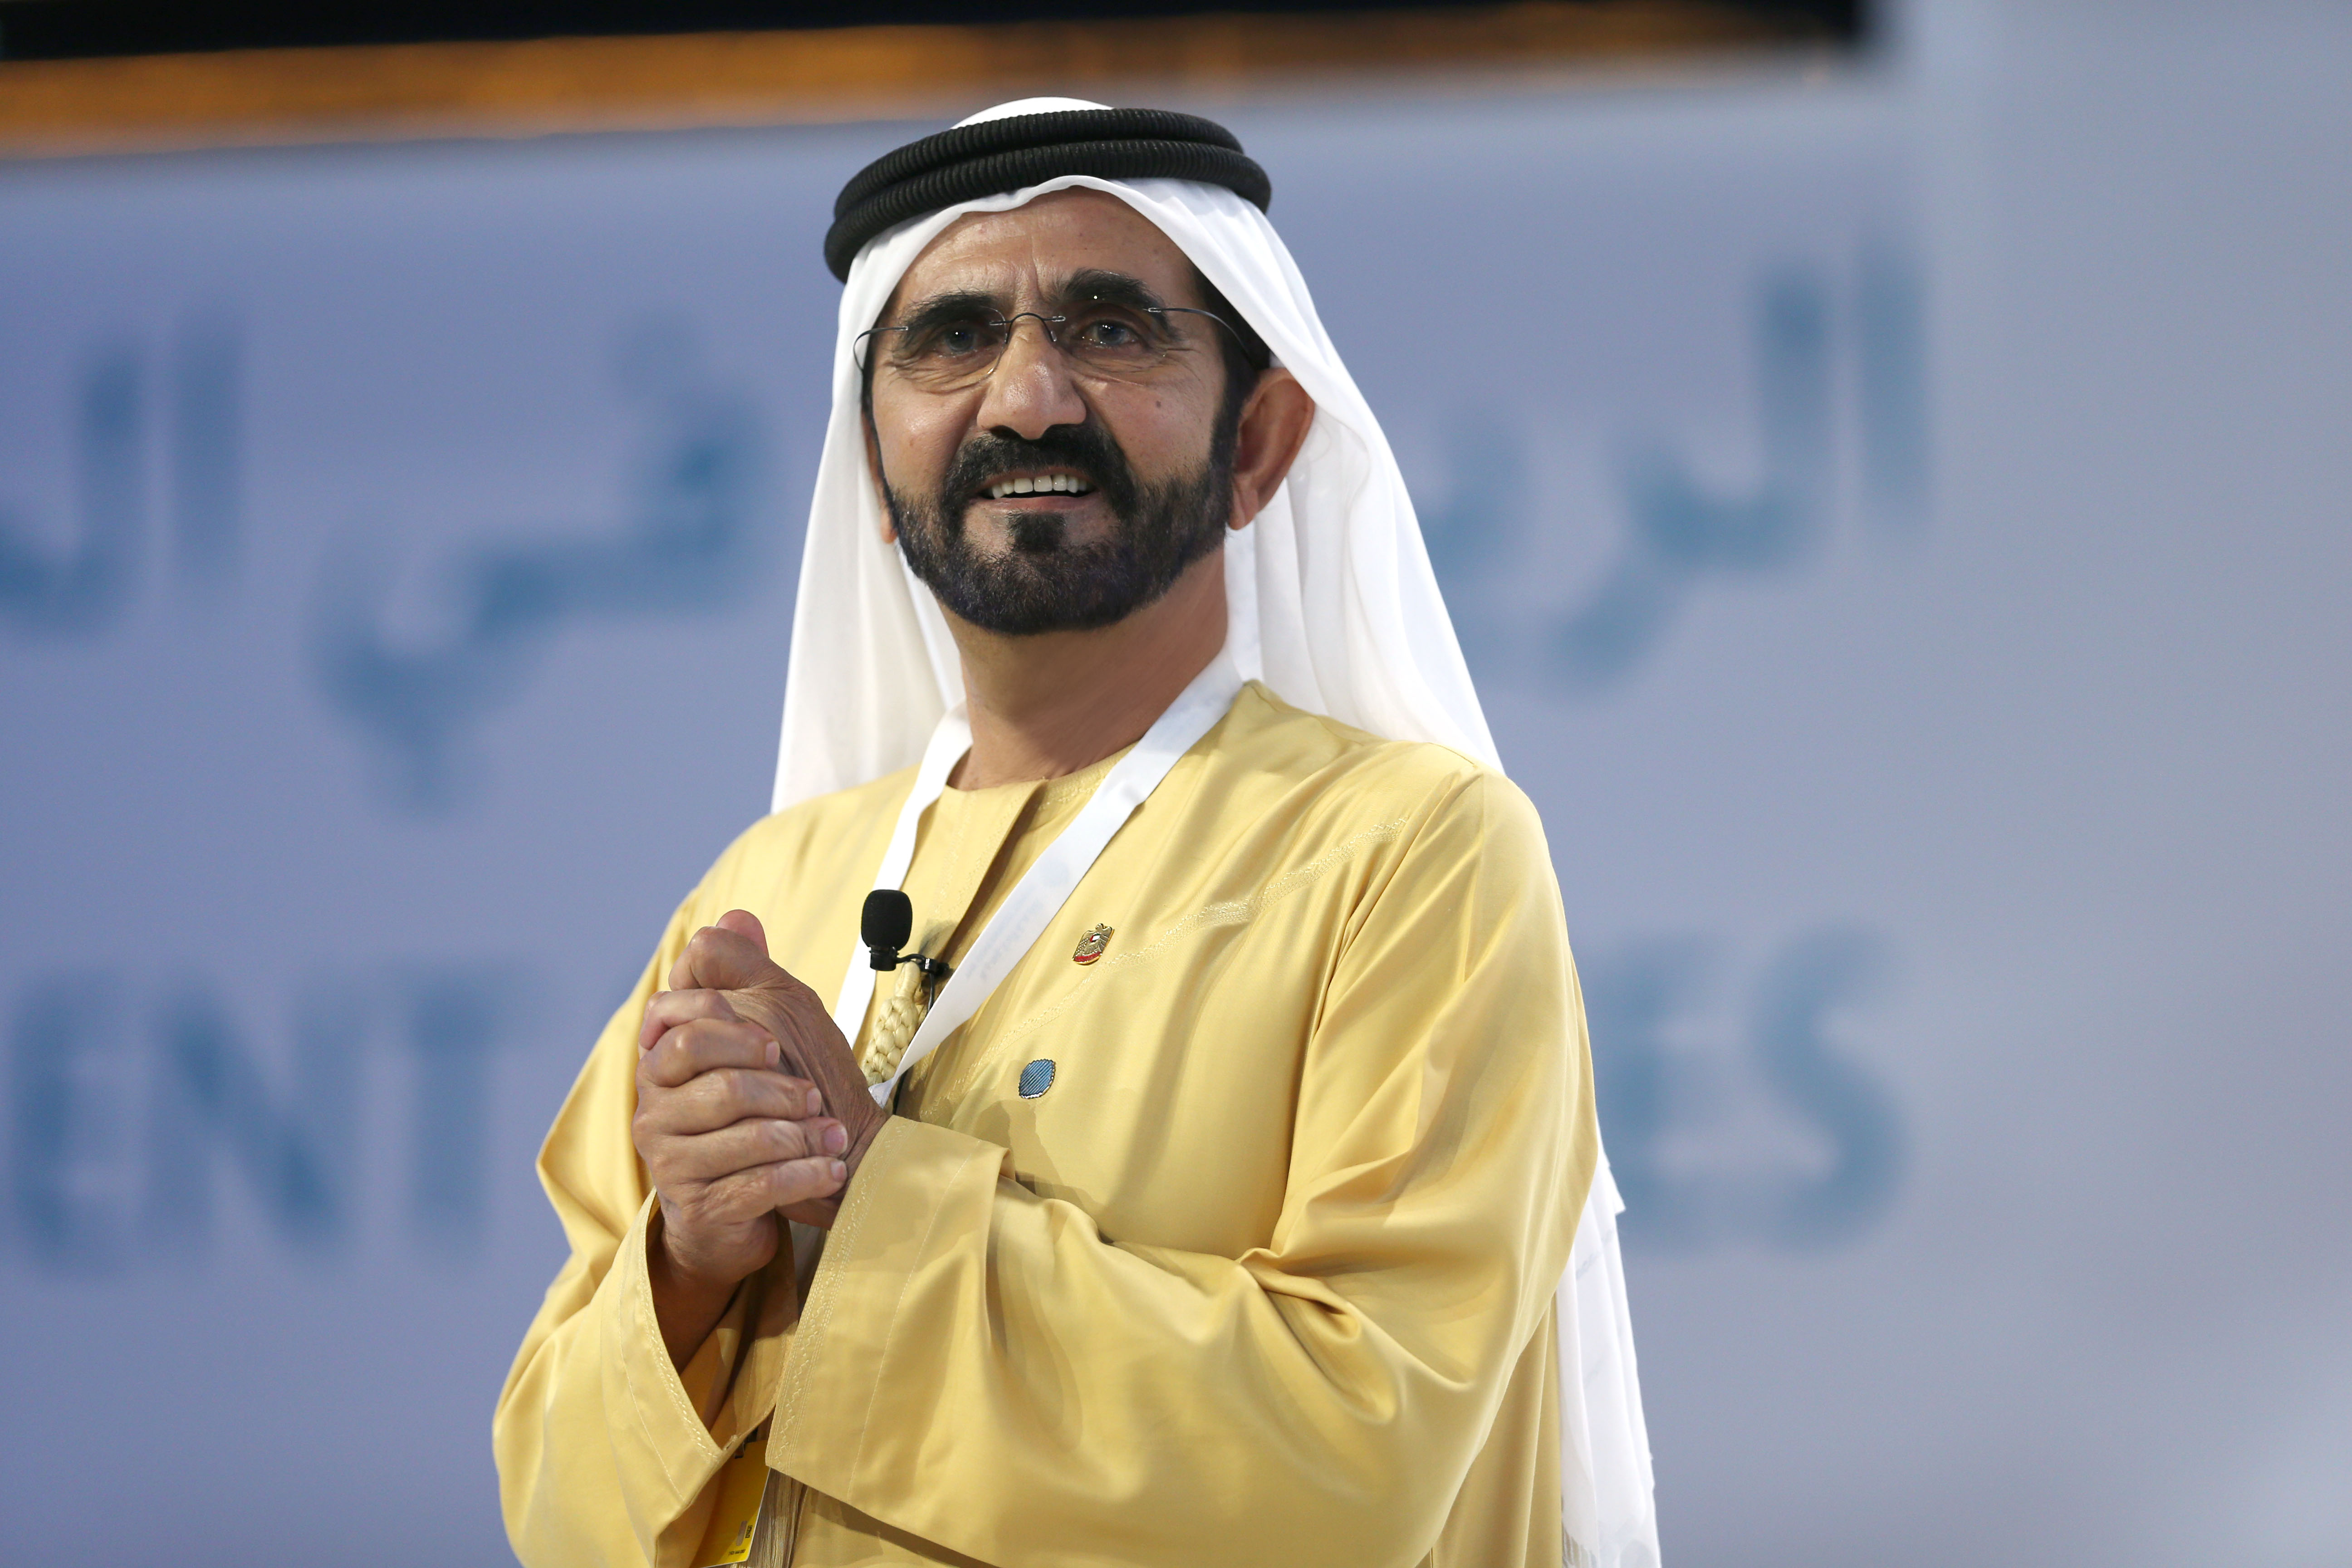 His Highness Sheikh Mohammed bin Rashid Al Maktoum - Mohammed bin Rashid's discussion with Emiratis and Arab citizens at Government Summit